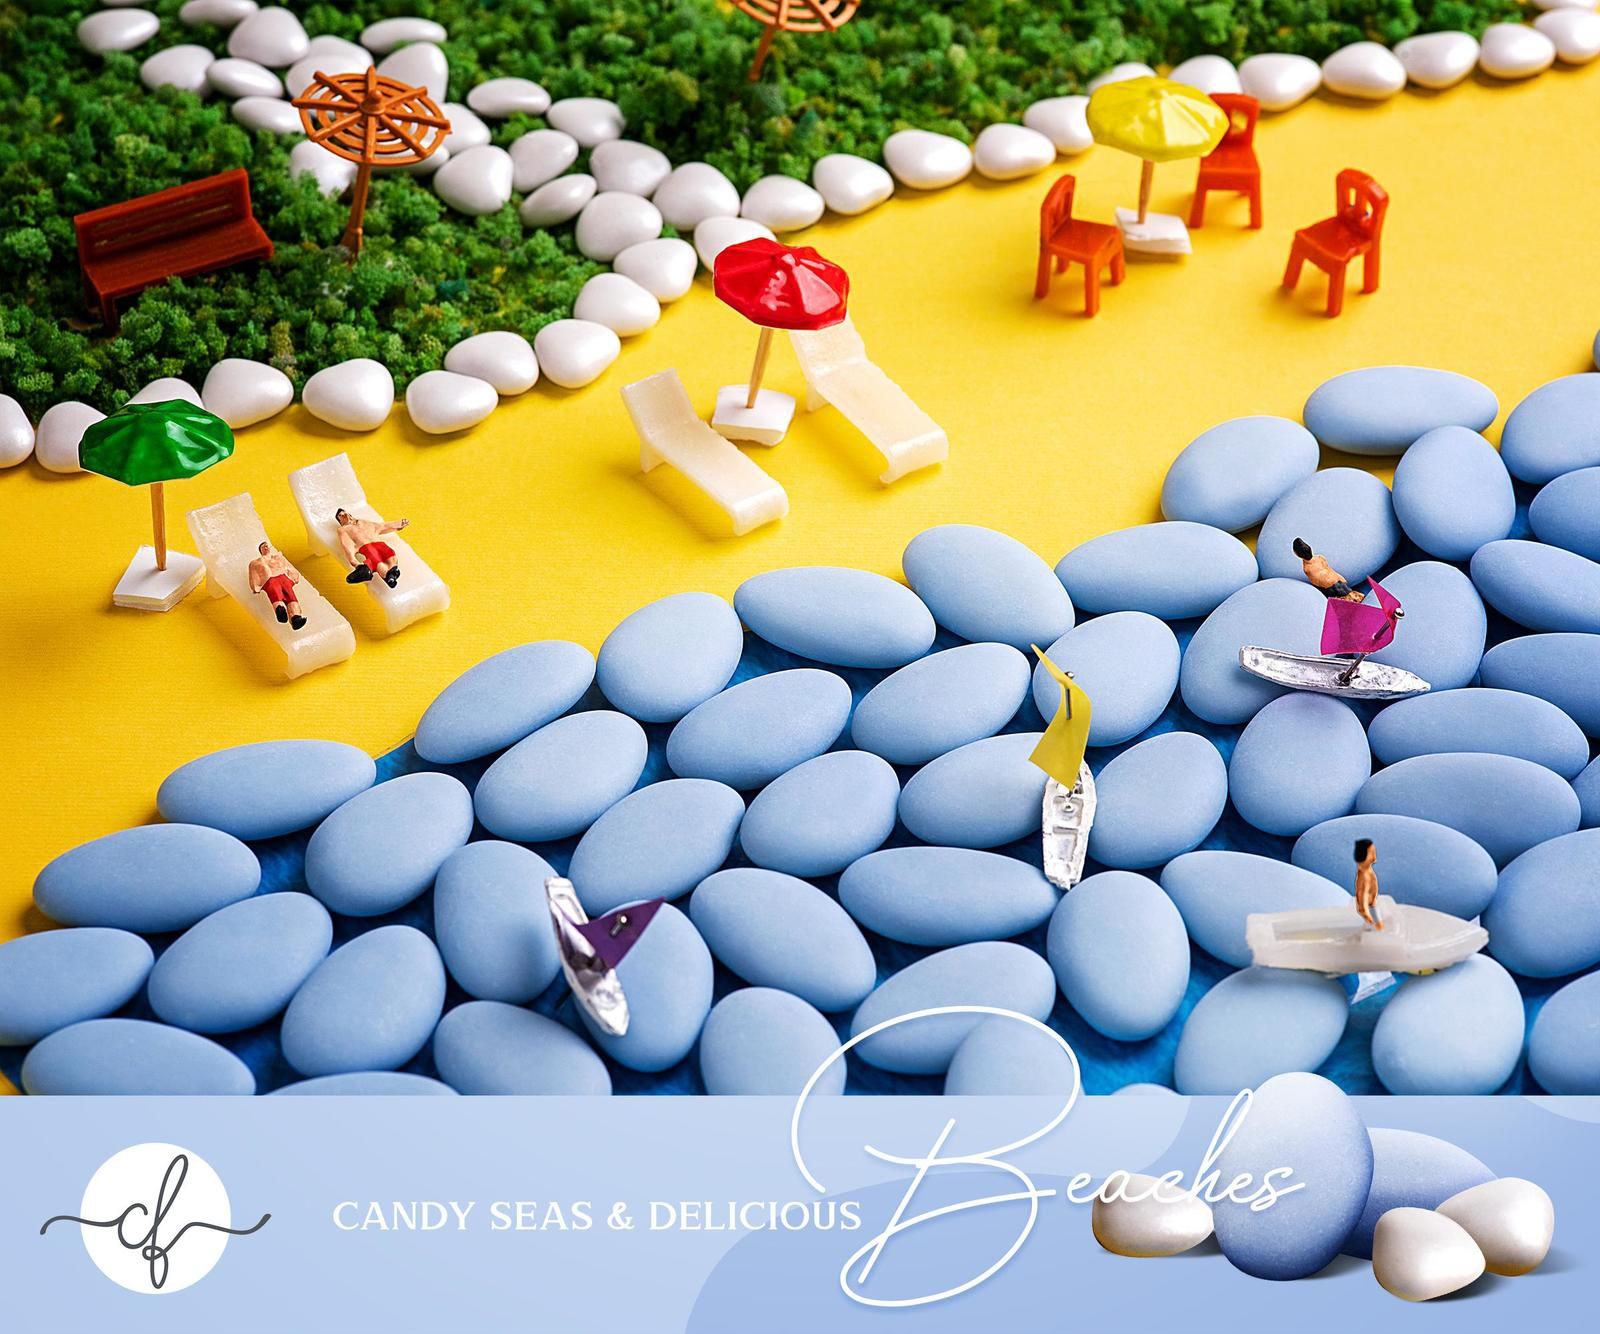 """Chocolate Factory : """"Candy seas and delicious beaches"""" I Agence : Artbox Studios, Le Caire, Egypte (juillet 2020)"""